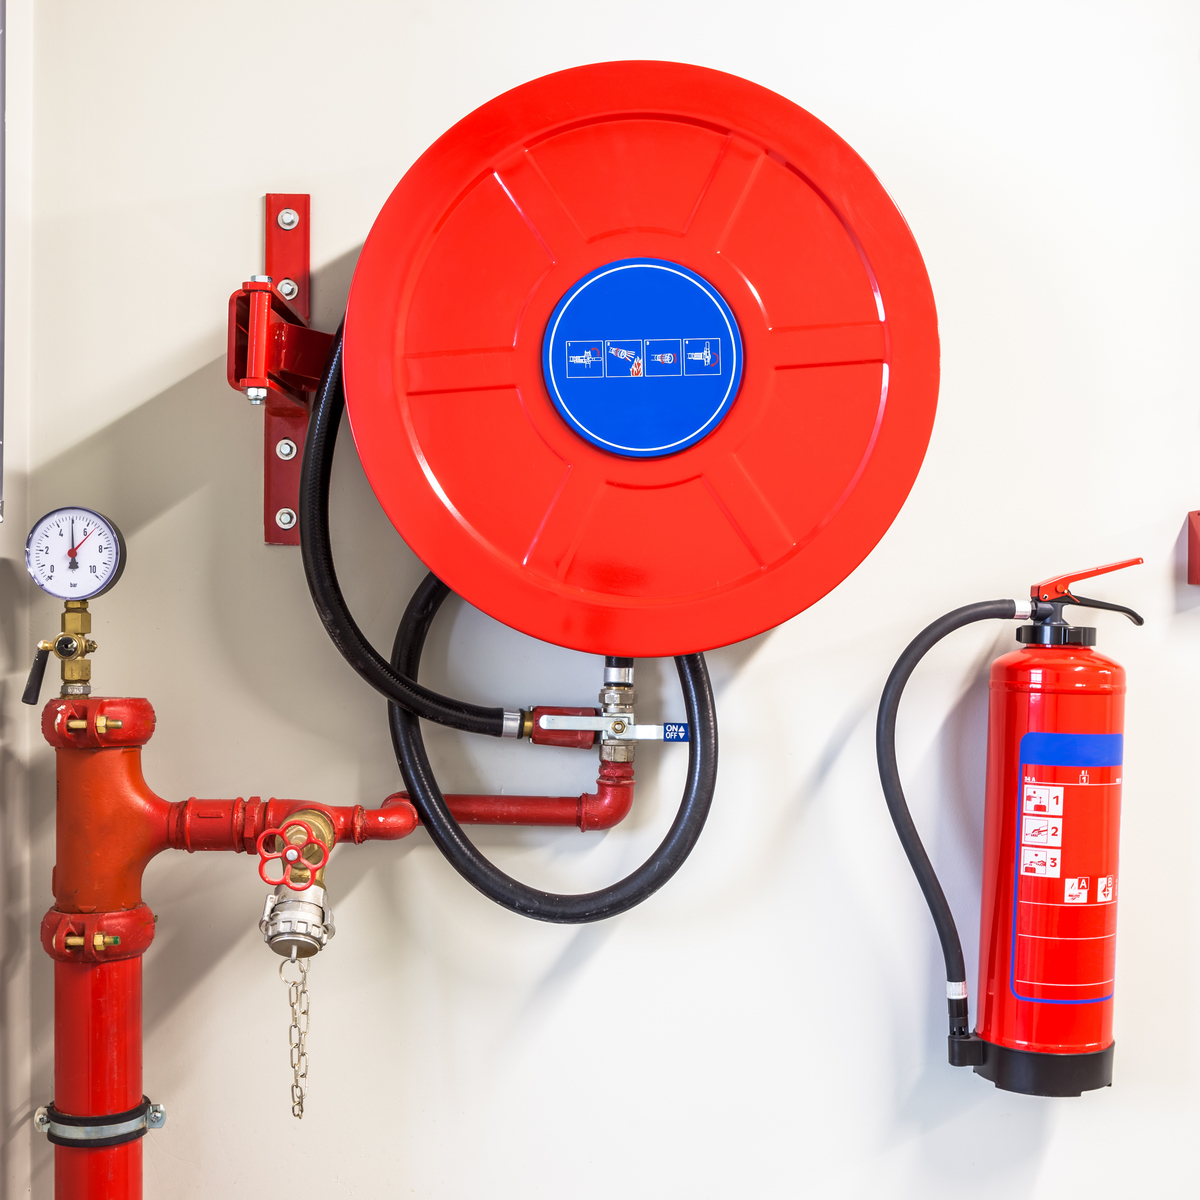 Glow Fire Protection hose reels and hydrants